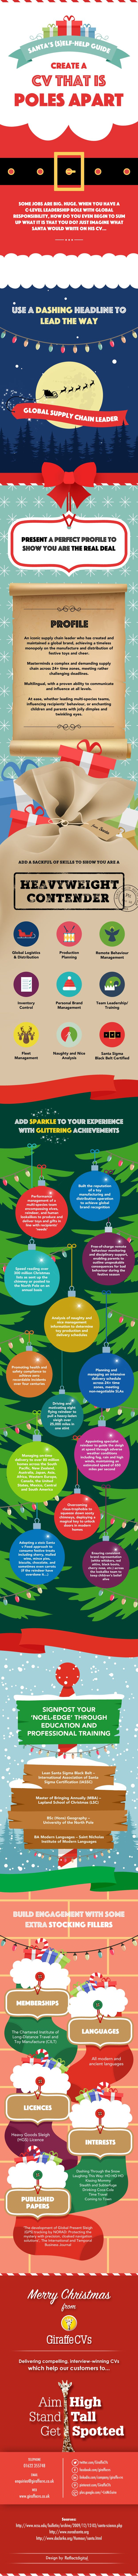 Santa's Self-Help Guide to Creating Your CV Infographic - http://elearninginfographics.com/santas-self-help-guide-creating-cv-infographic/